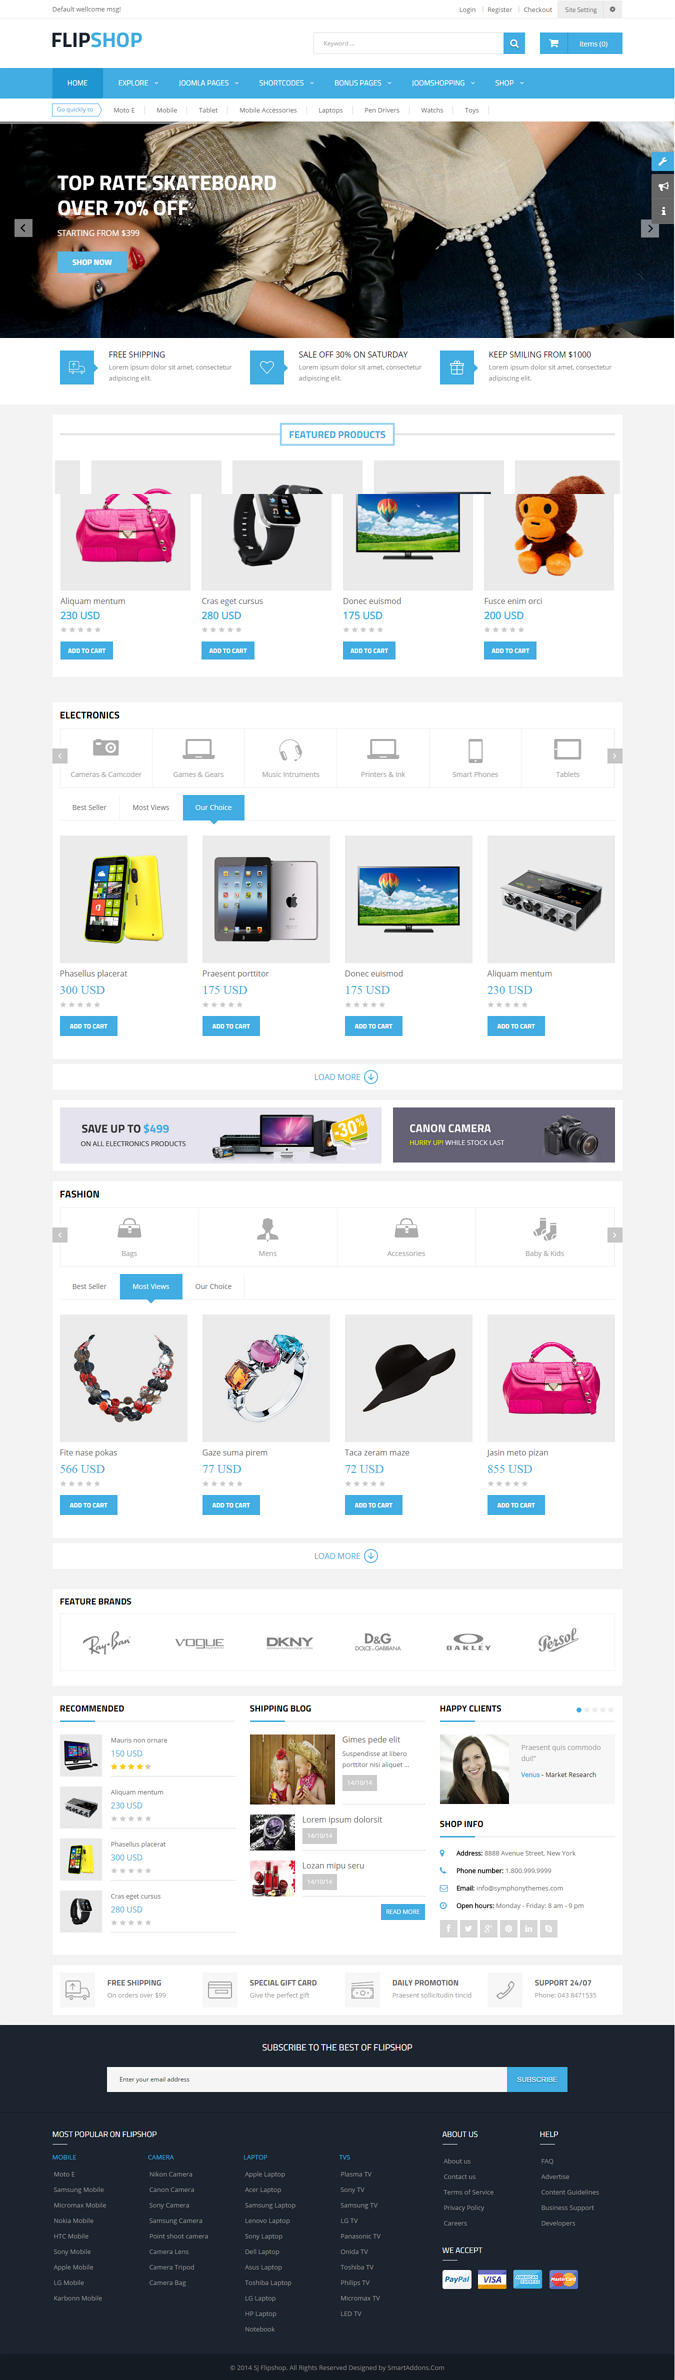 FlipShop Responsive multipurpose Joomla template, is integrated with one of the most powerful eC ...